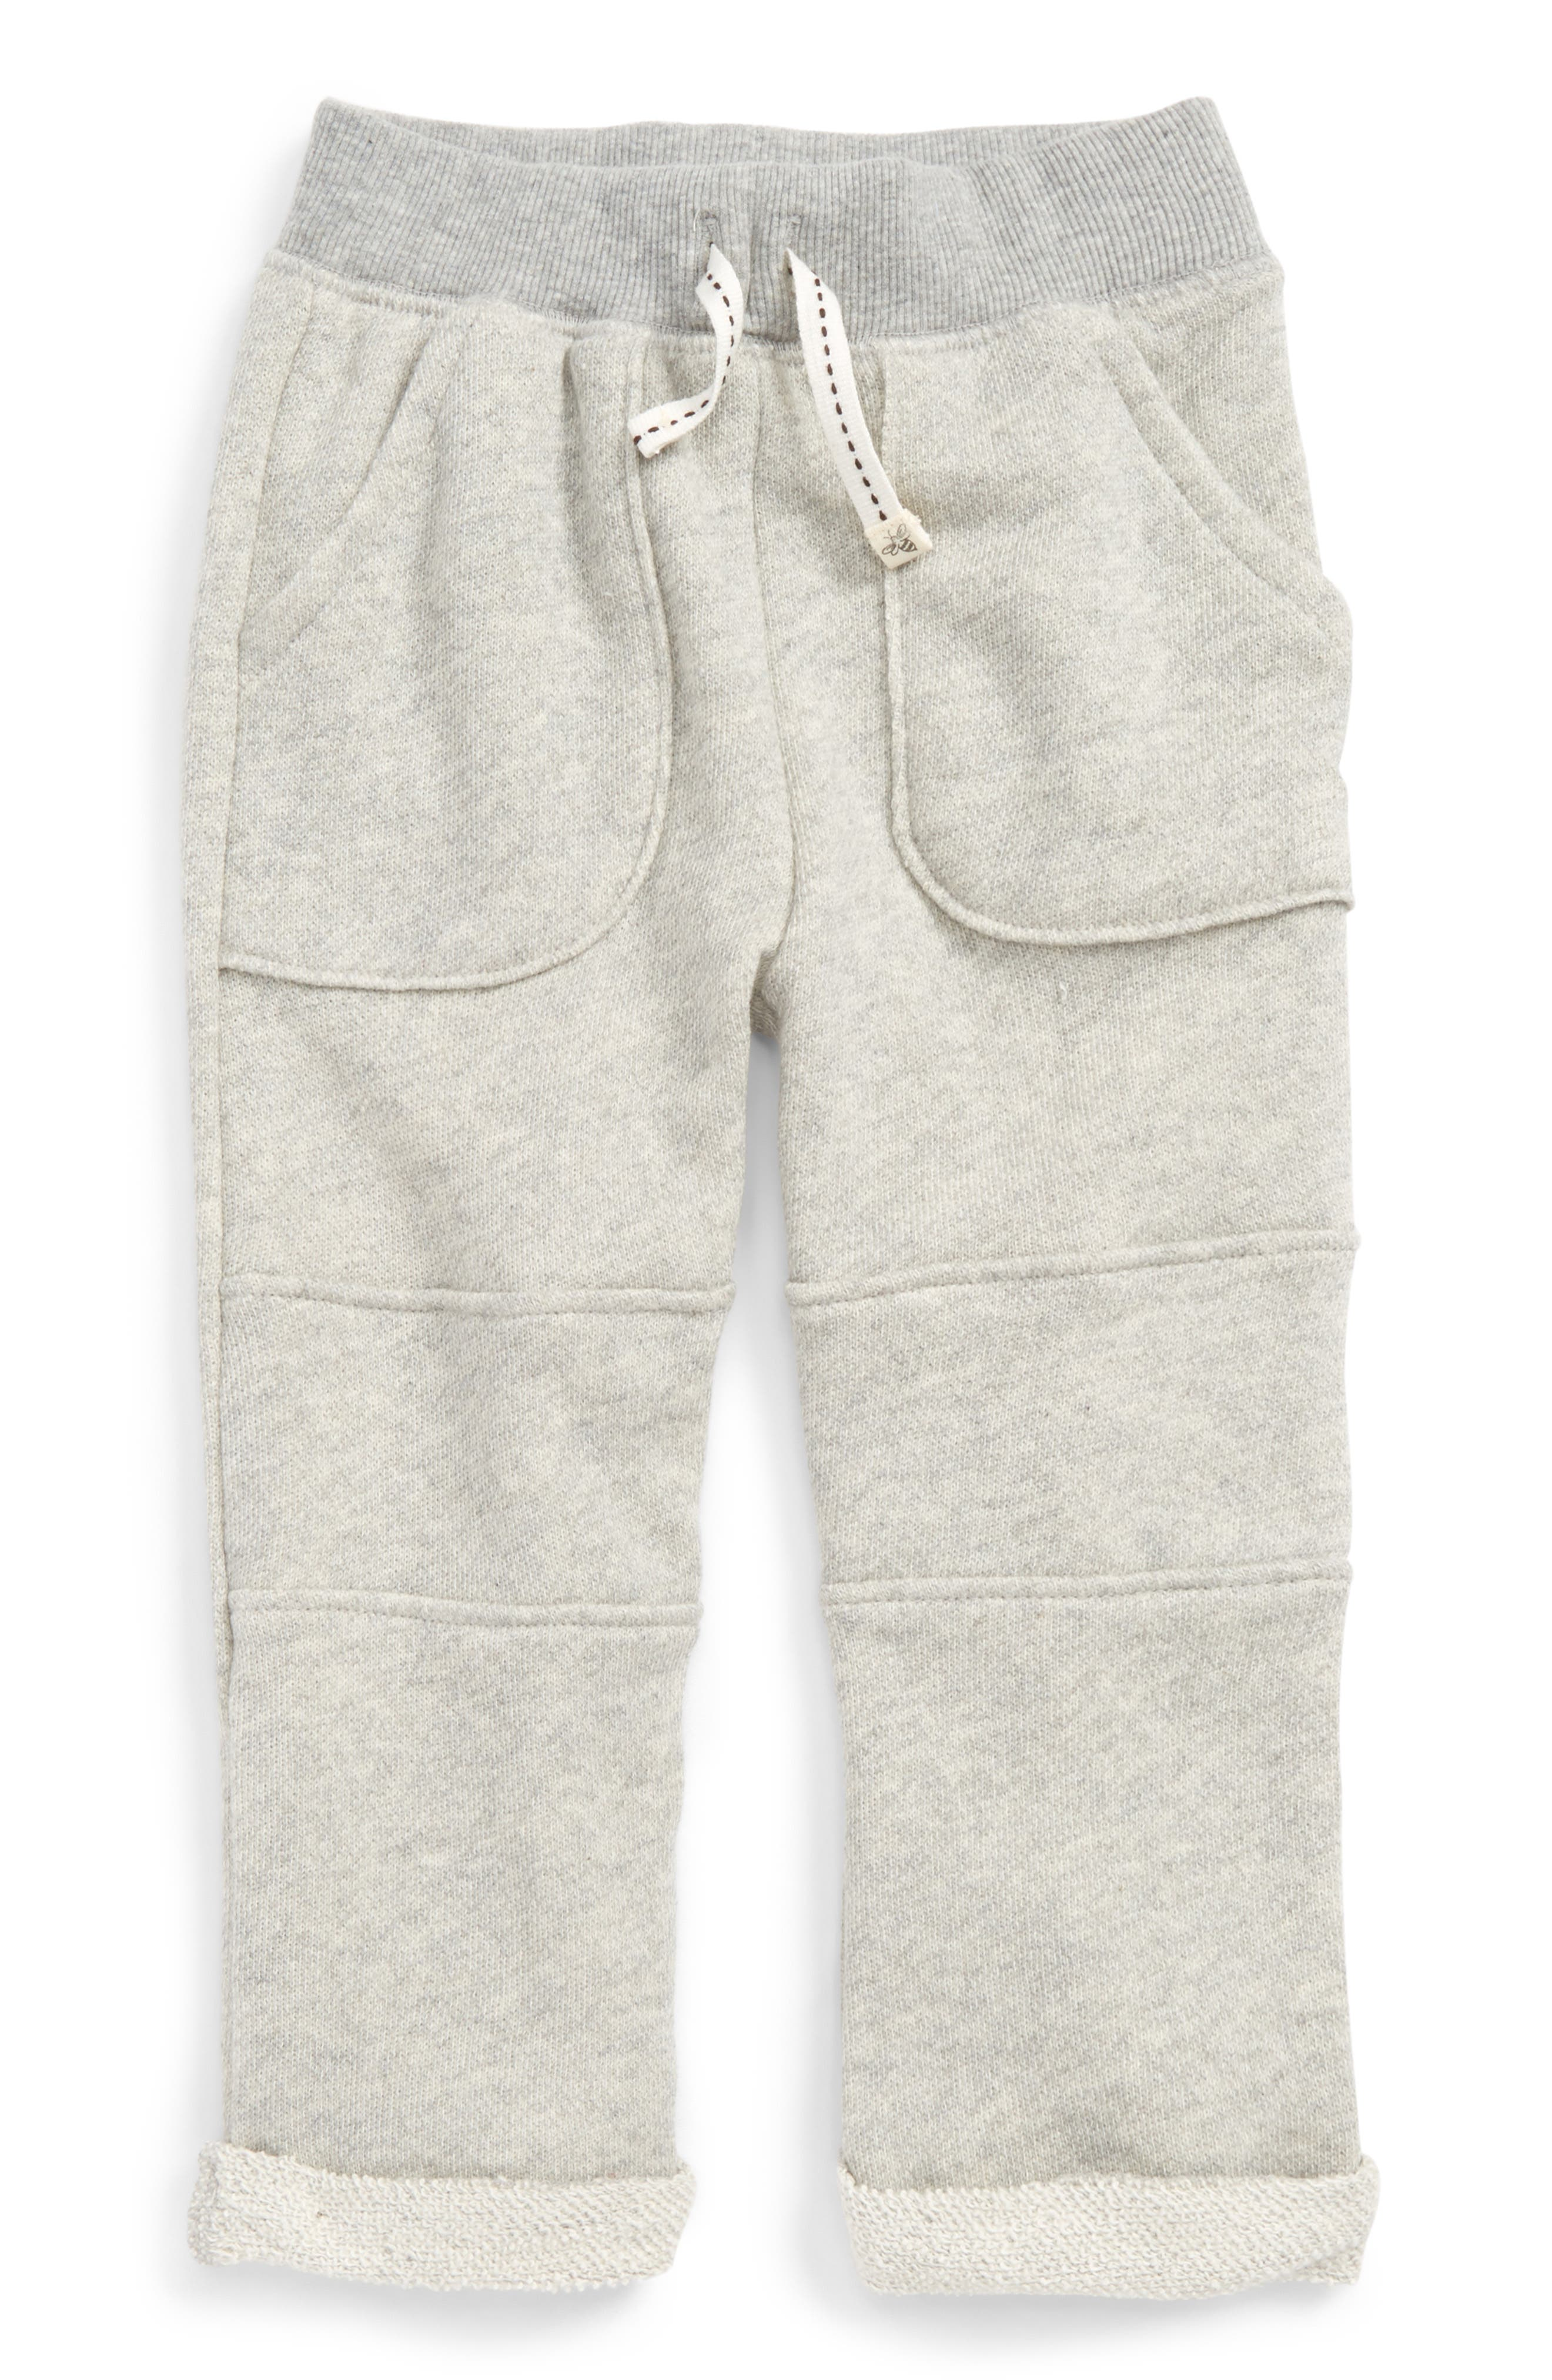 Burt's Bees Baby French Terry Organic Cotton Pants (Baby Boys)